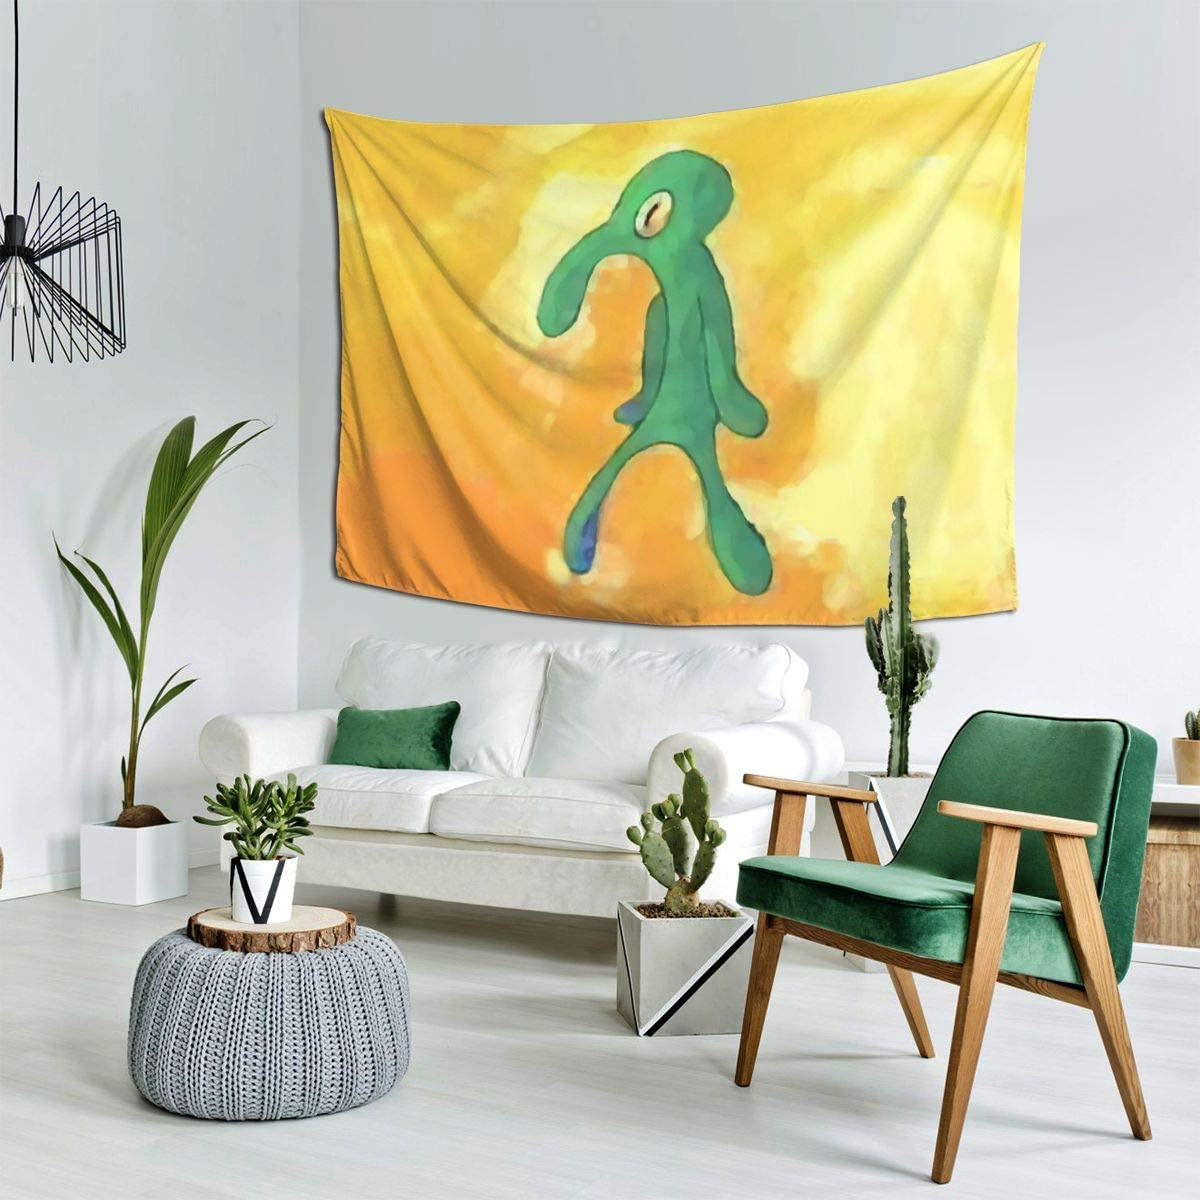 CARRYFUTURE Yellow Tapestry Squidward Abstract Art Tapestries Meme Cartoon Wall Hanging for Room Bedroom Home Decor (Yellow, 60x90)